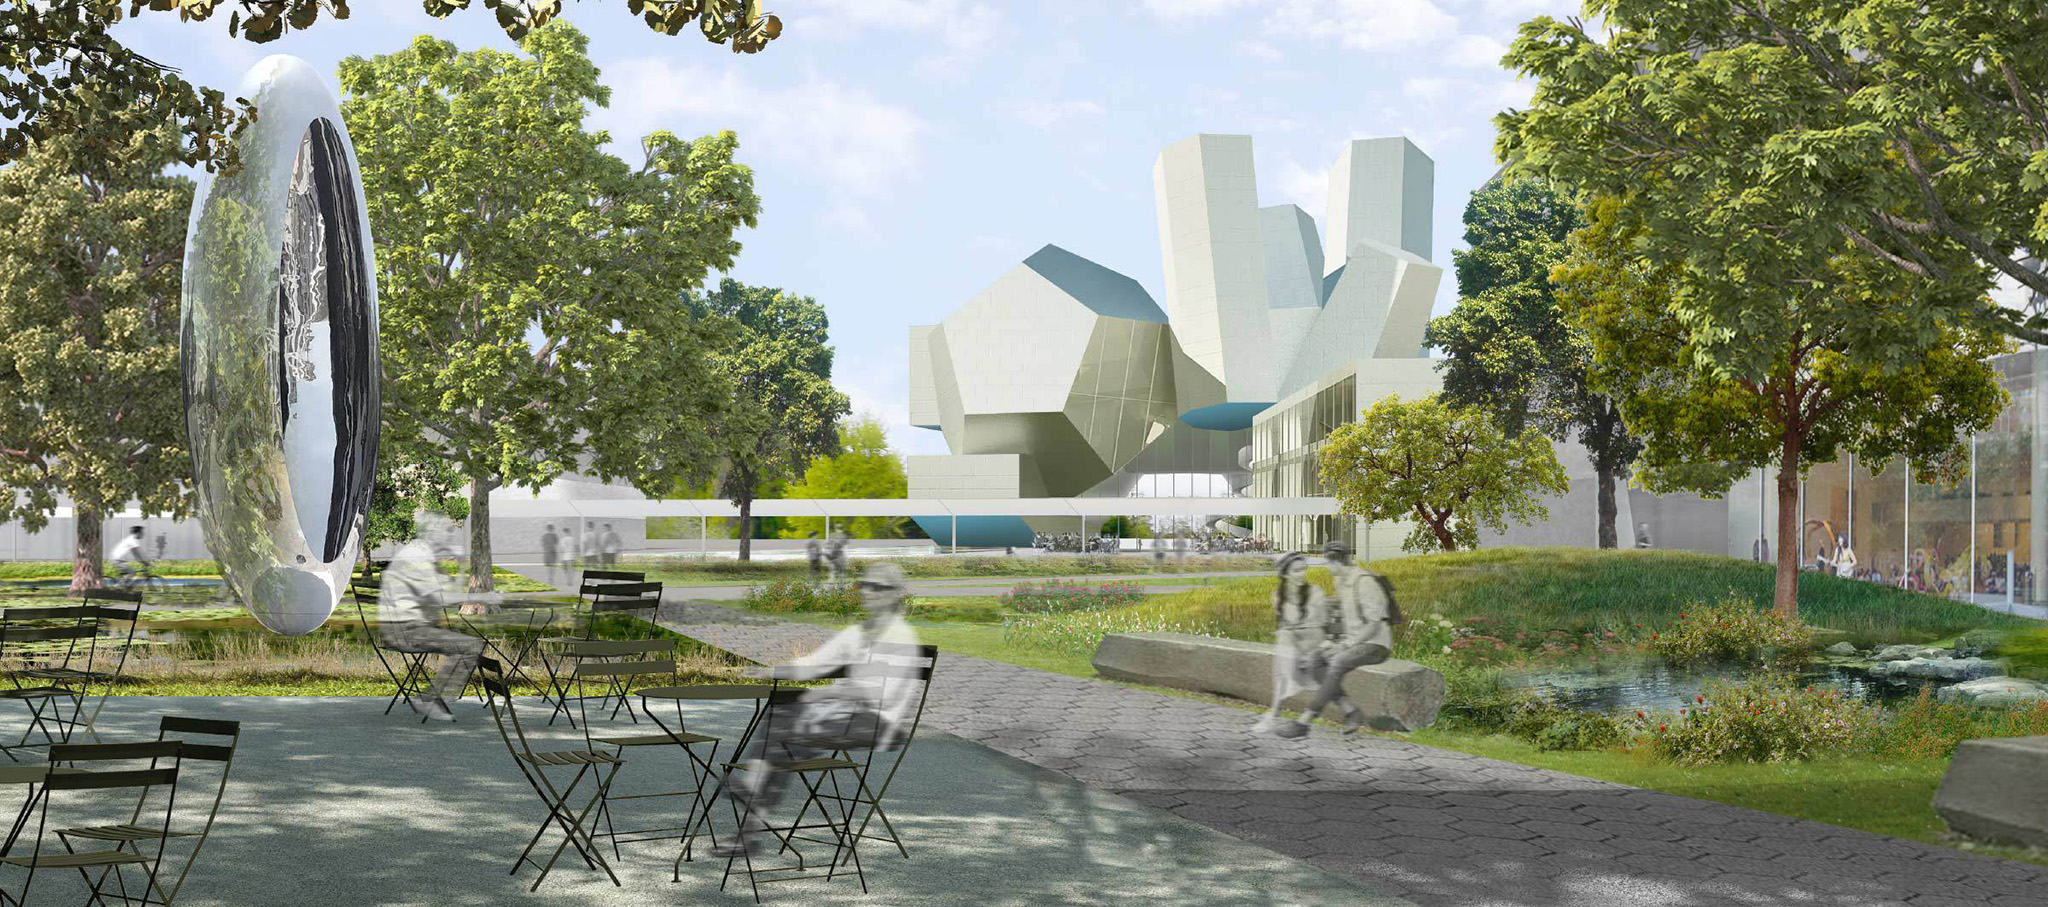 University College Dublin's Future Campus by Steven Holl Architects. Rendering by Steven Holl Architects